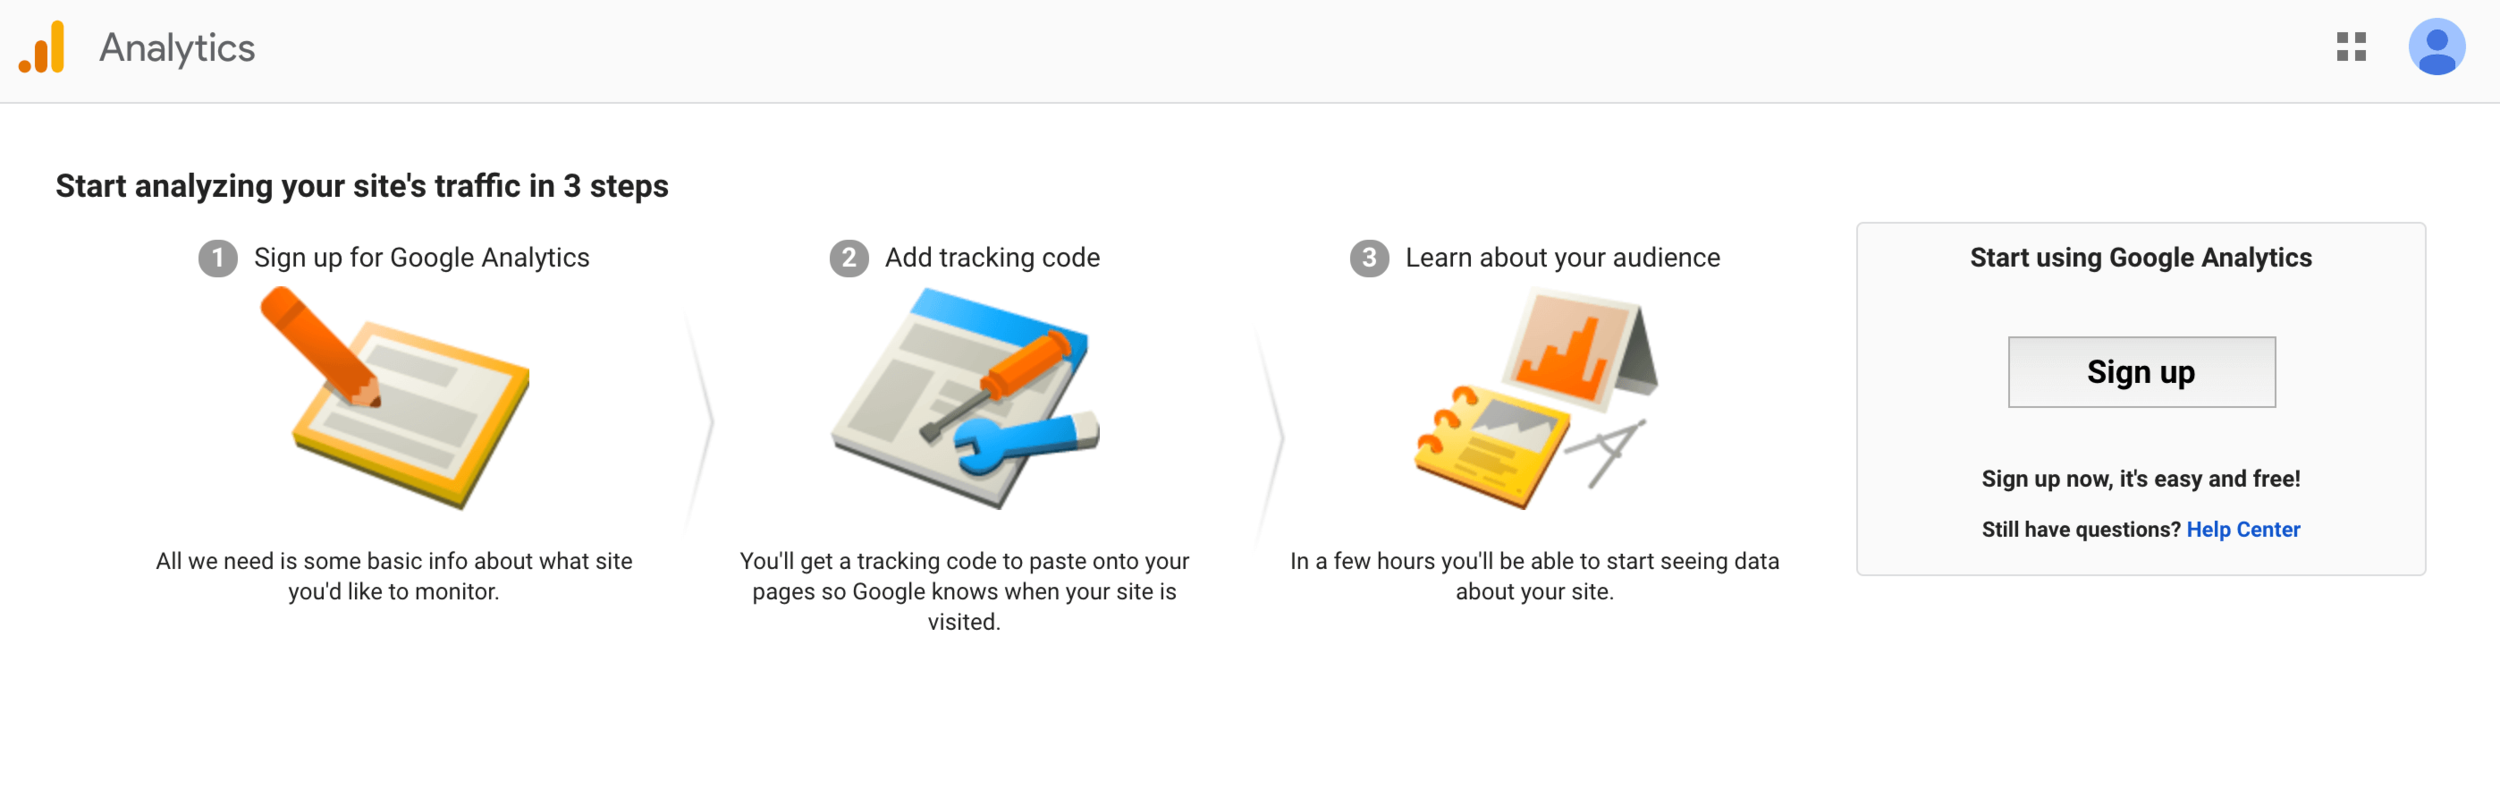 Go to Google Analytics and sign up for an account